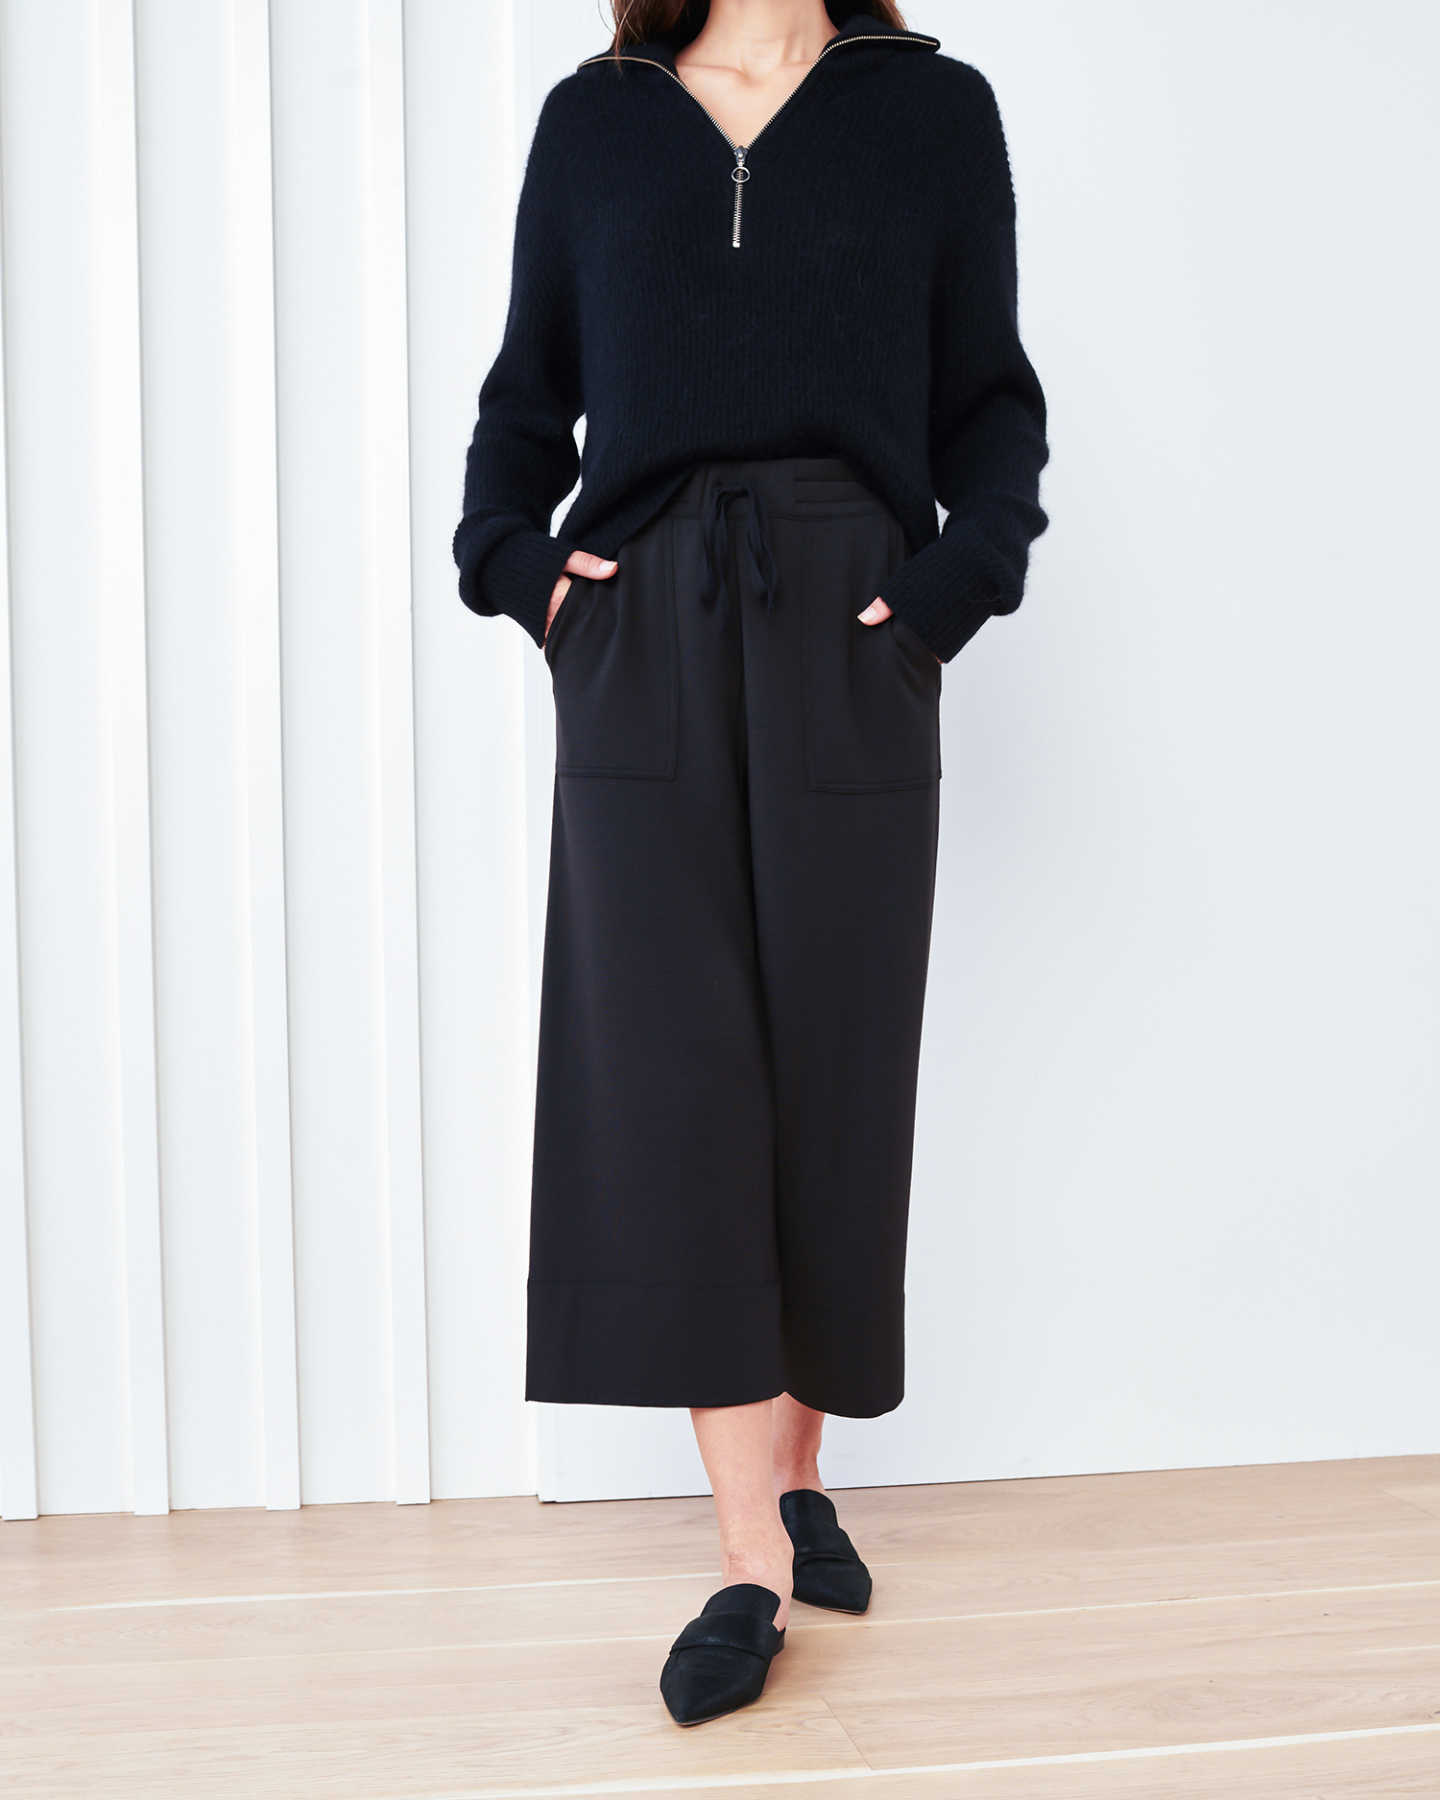 SuperSoft Fleece Wide Leg Pants - Black - 5